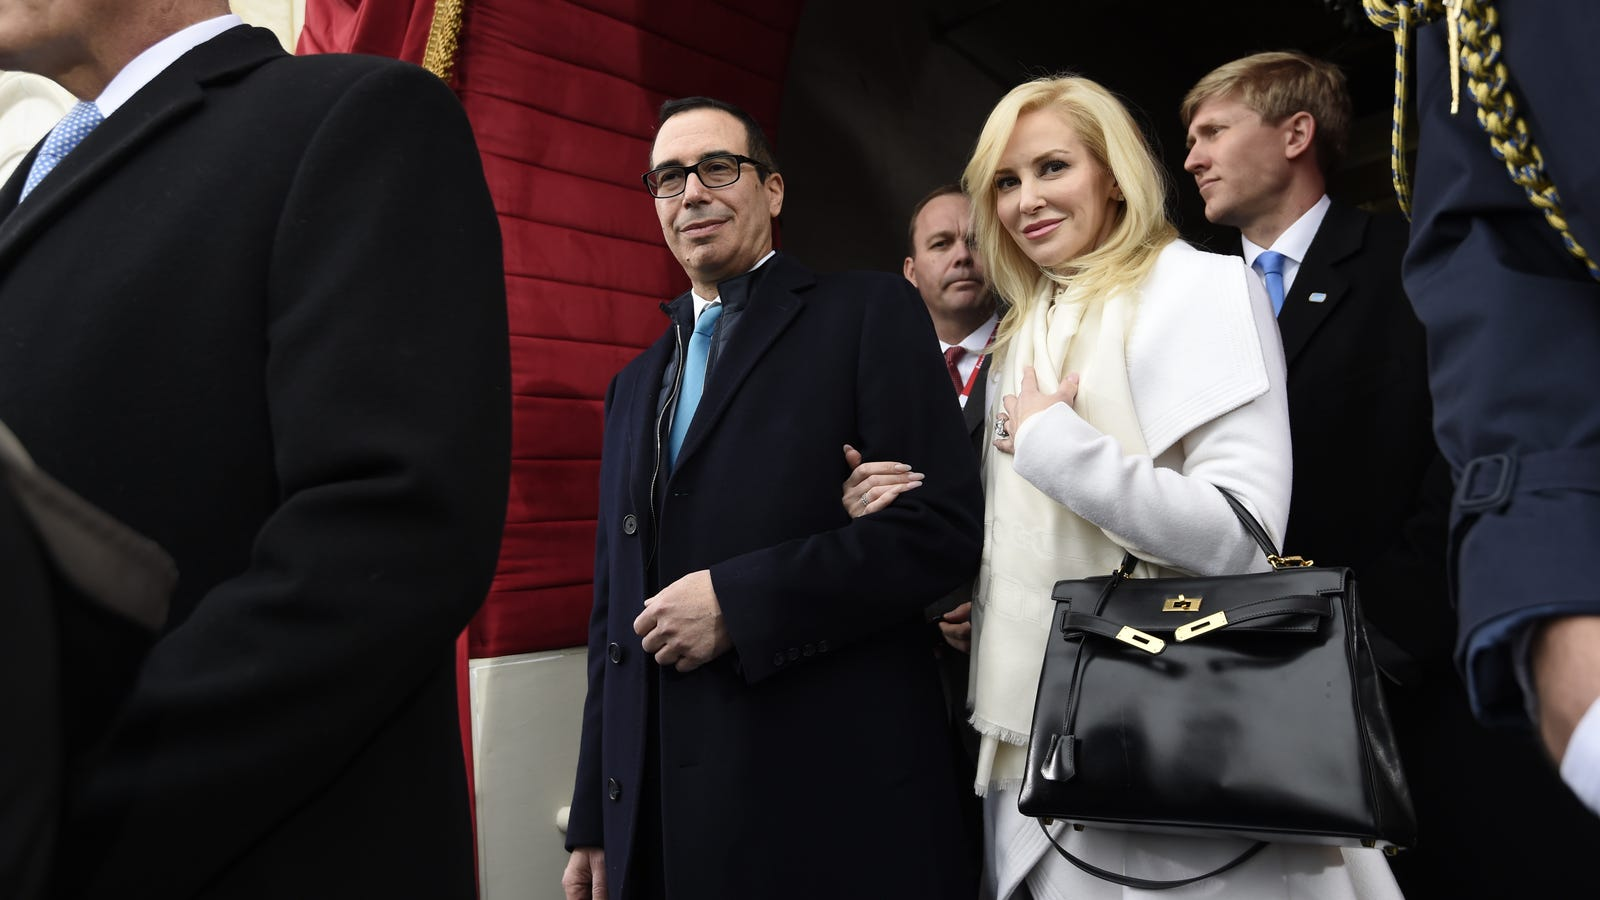 nd7hmawv6se1avsqmqze - Louise Linton Swears She's Relatable, Wears SoulCycle Gear 'Every Single Day of My Life'